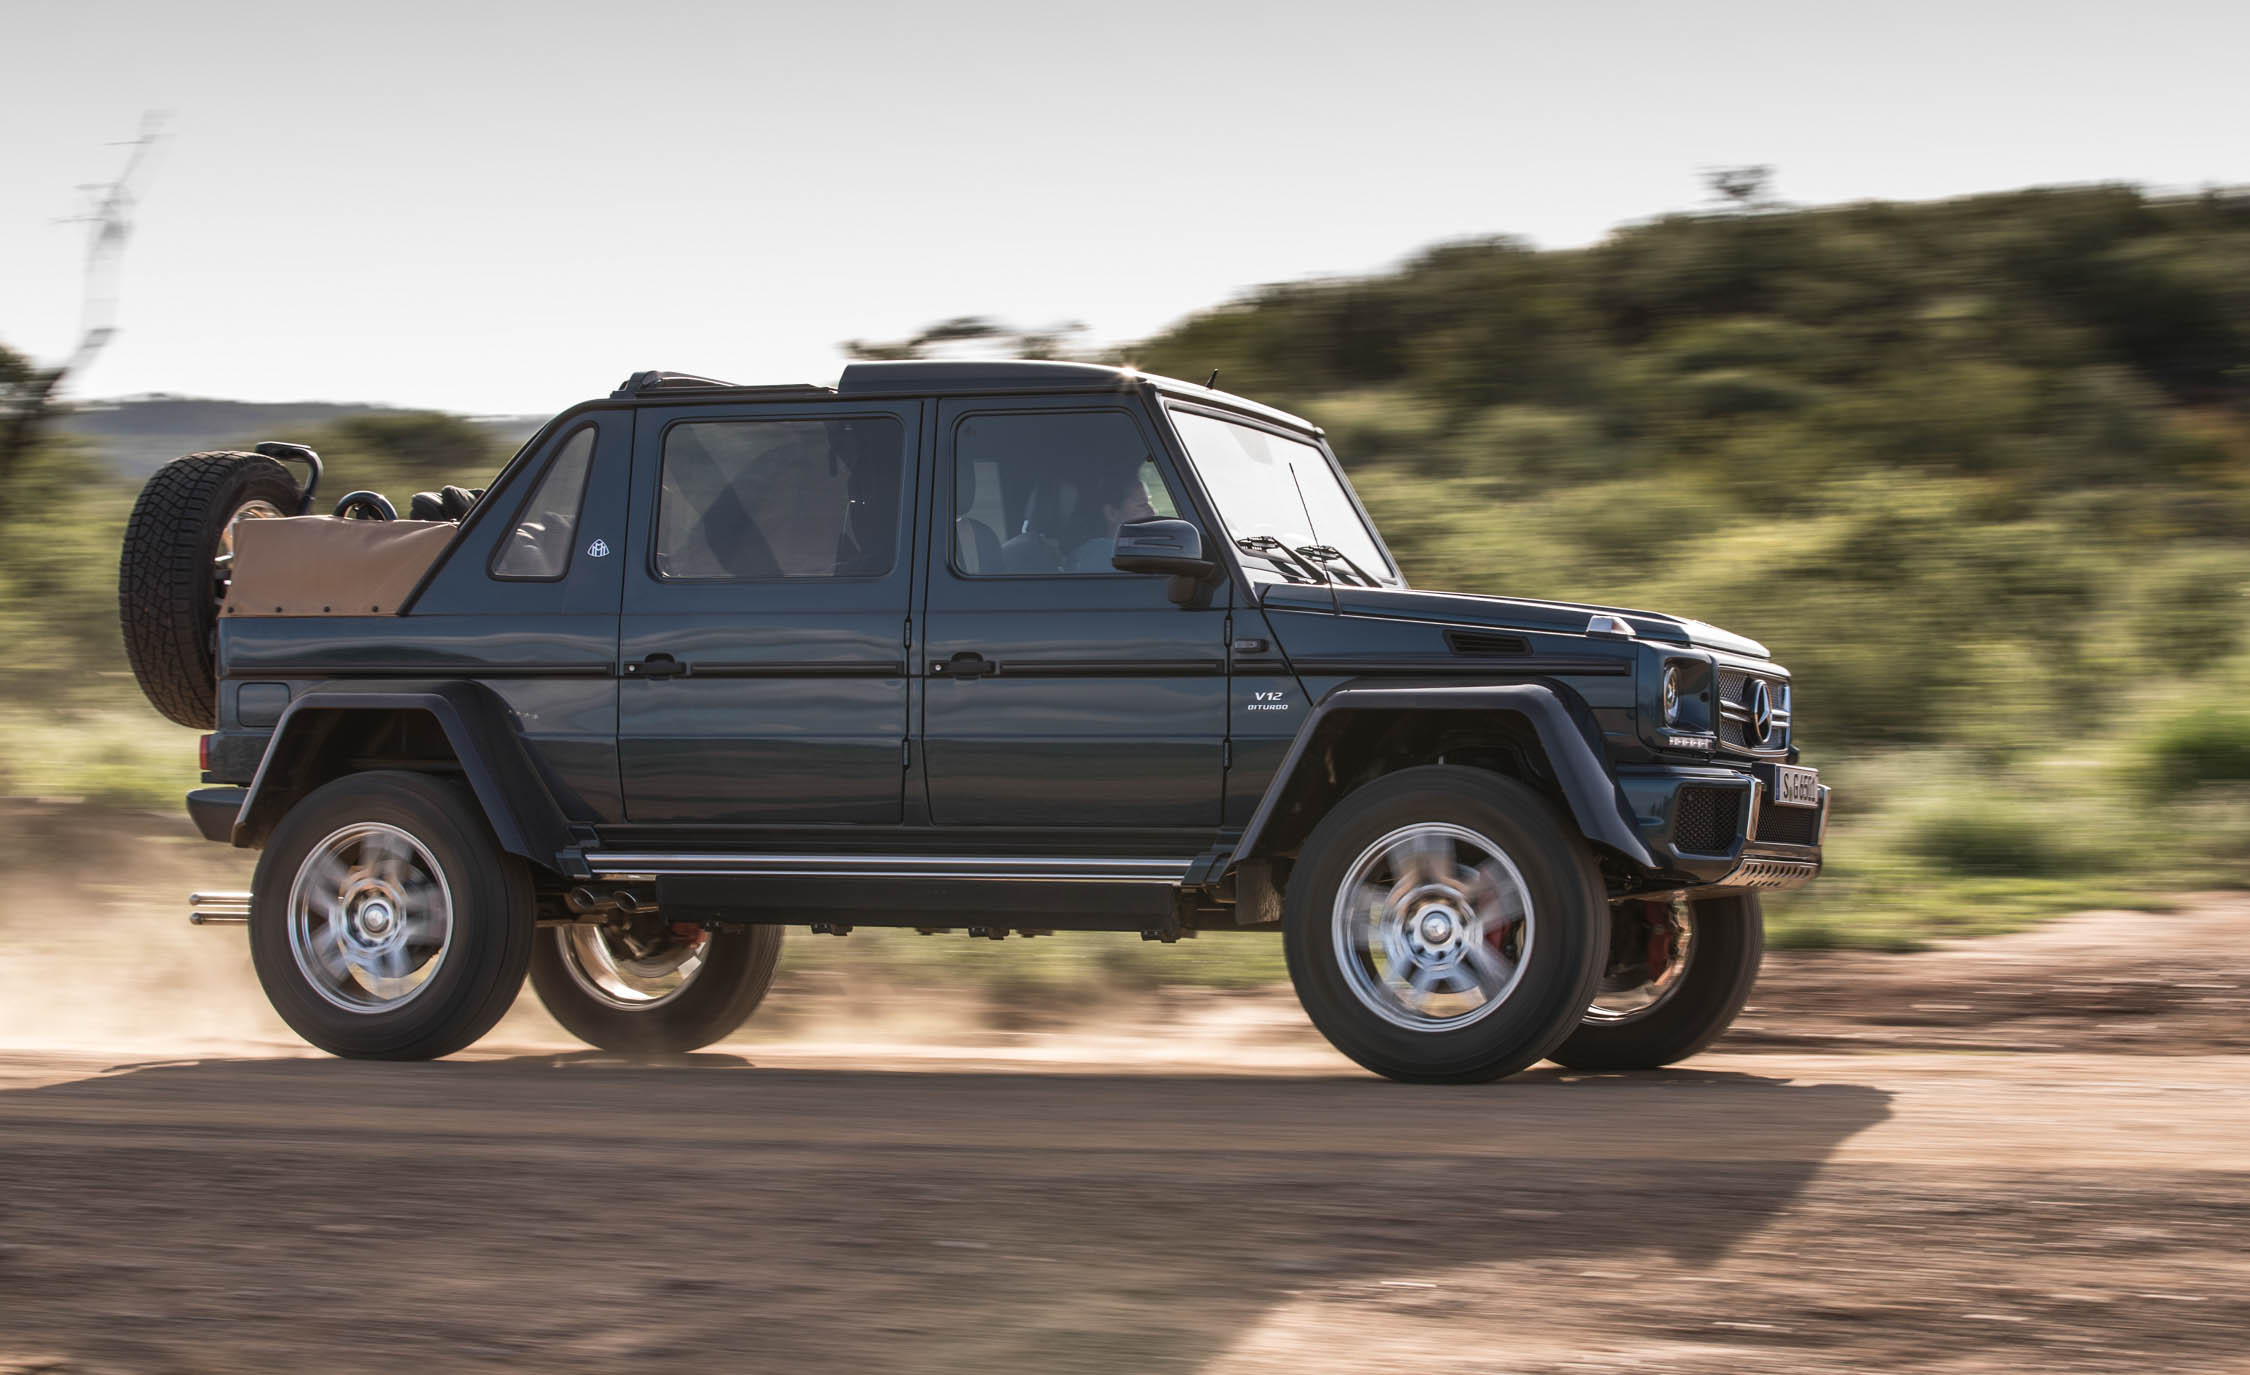 2018 Mercedes Maybach G650 Landaulet Test Drive Side Preview (Photo 42 of 52)